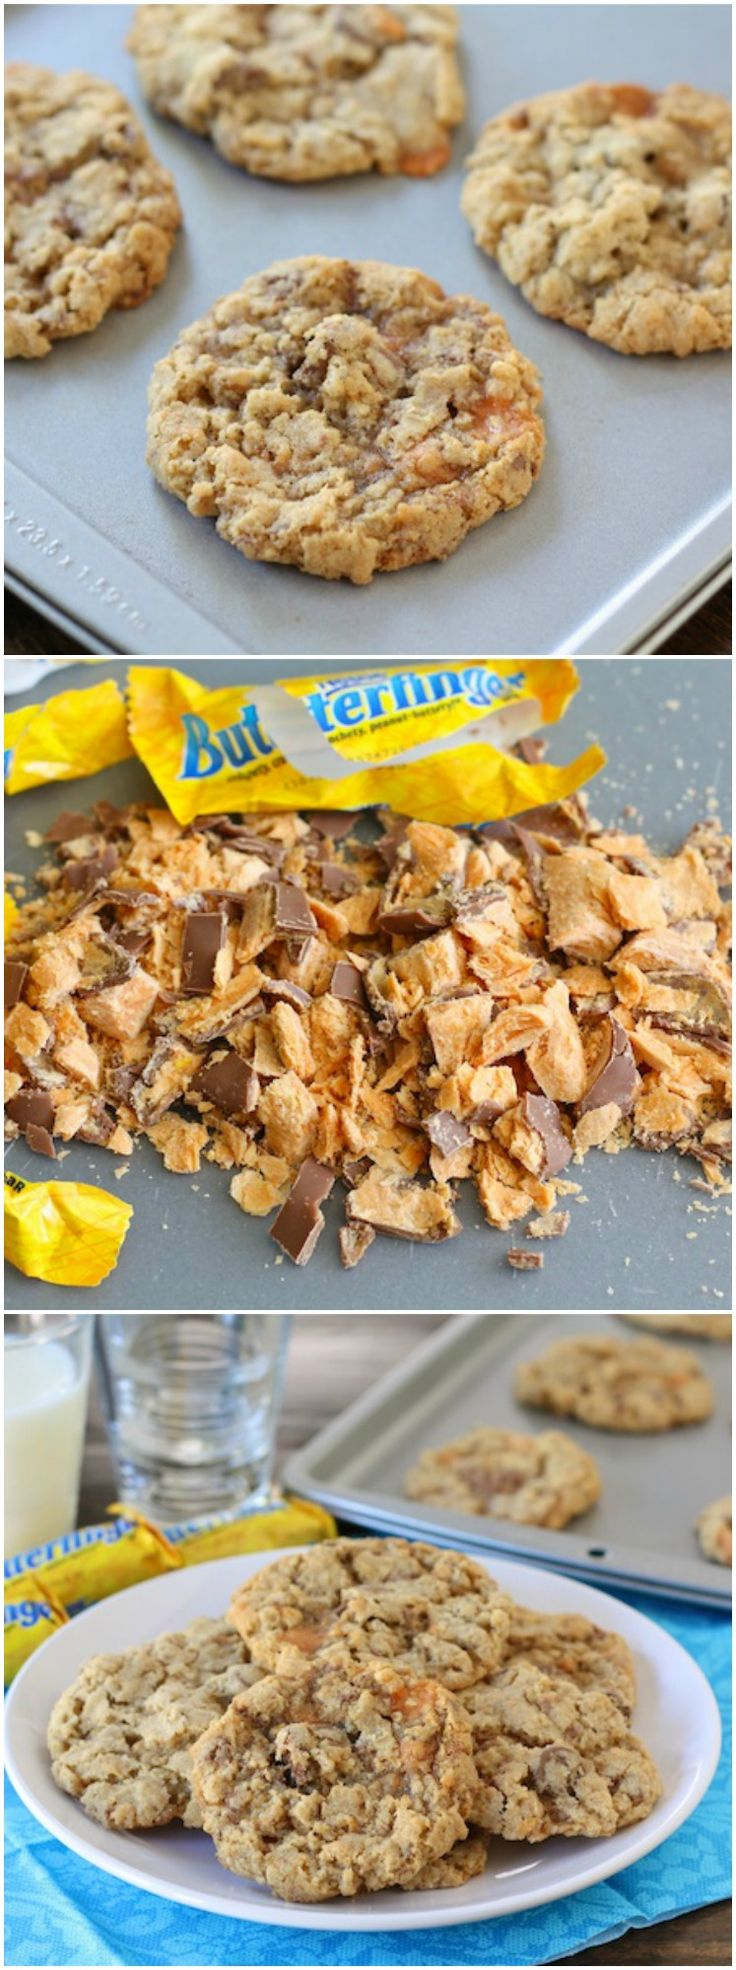 Crispy Butterfinger Cookie Recipe on twopeasandtheirpod.com Use your ...